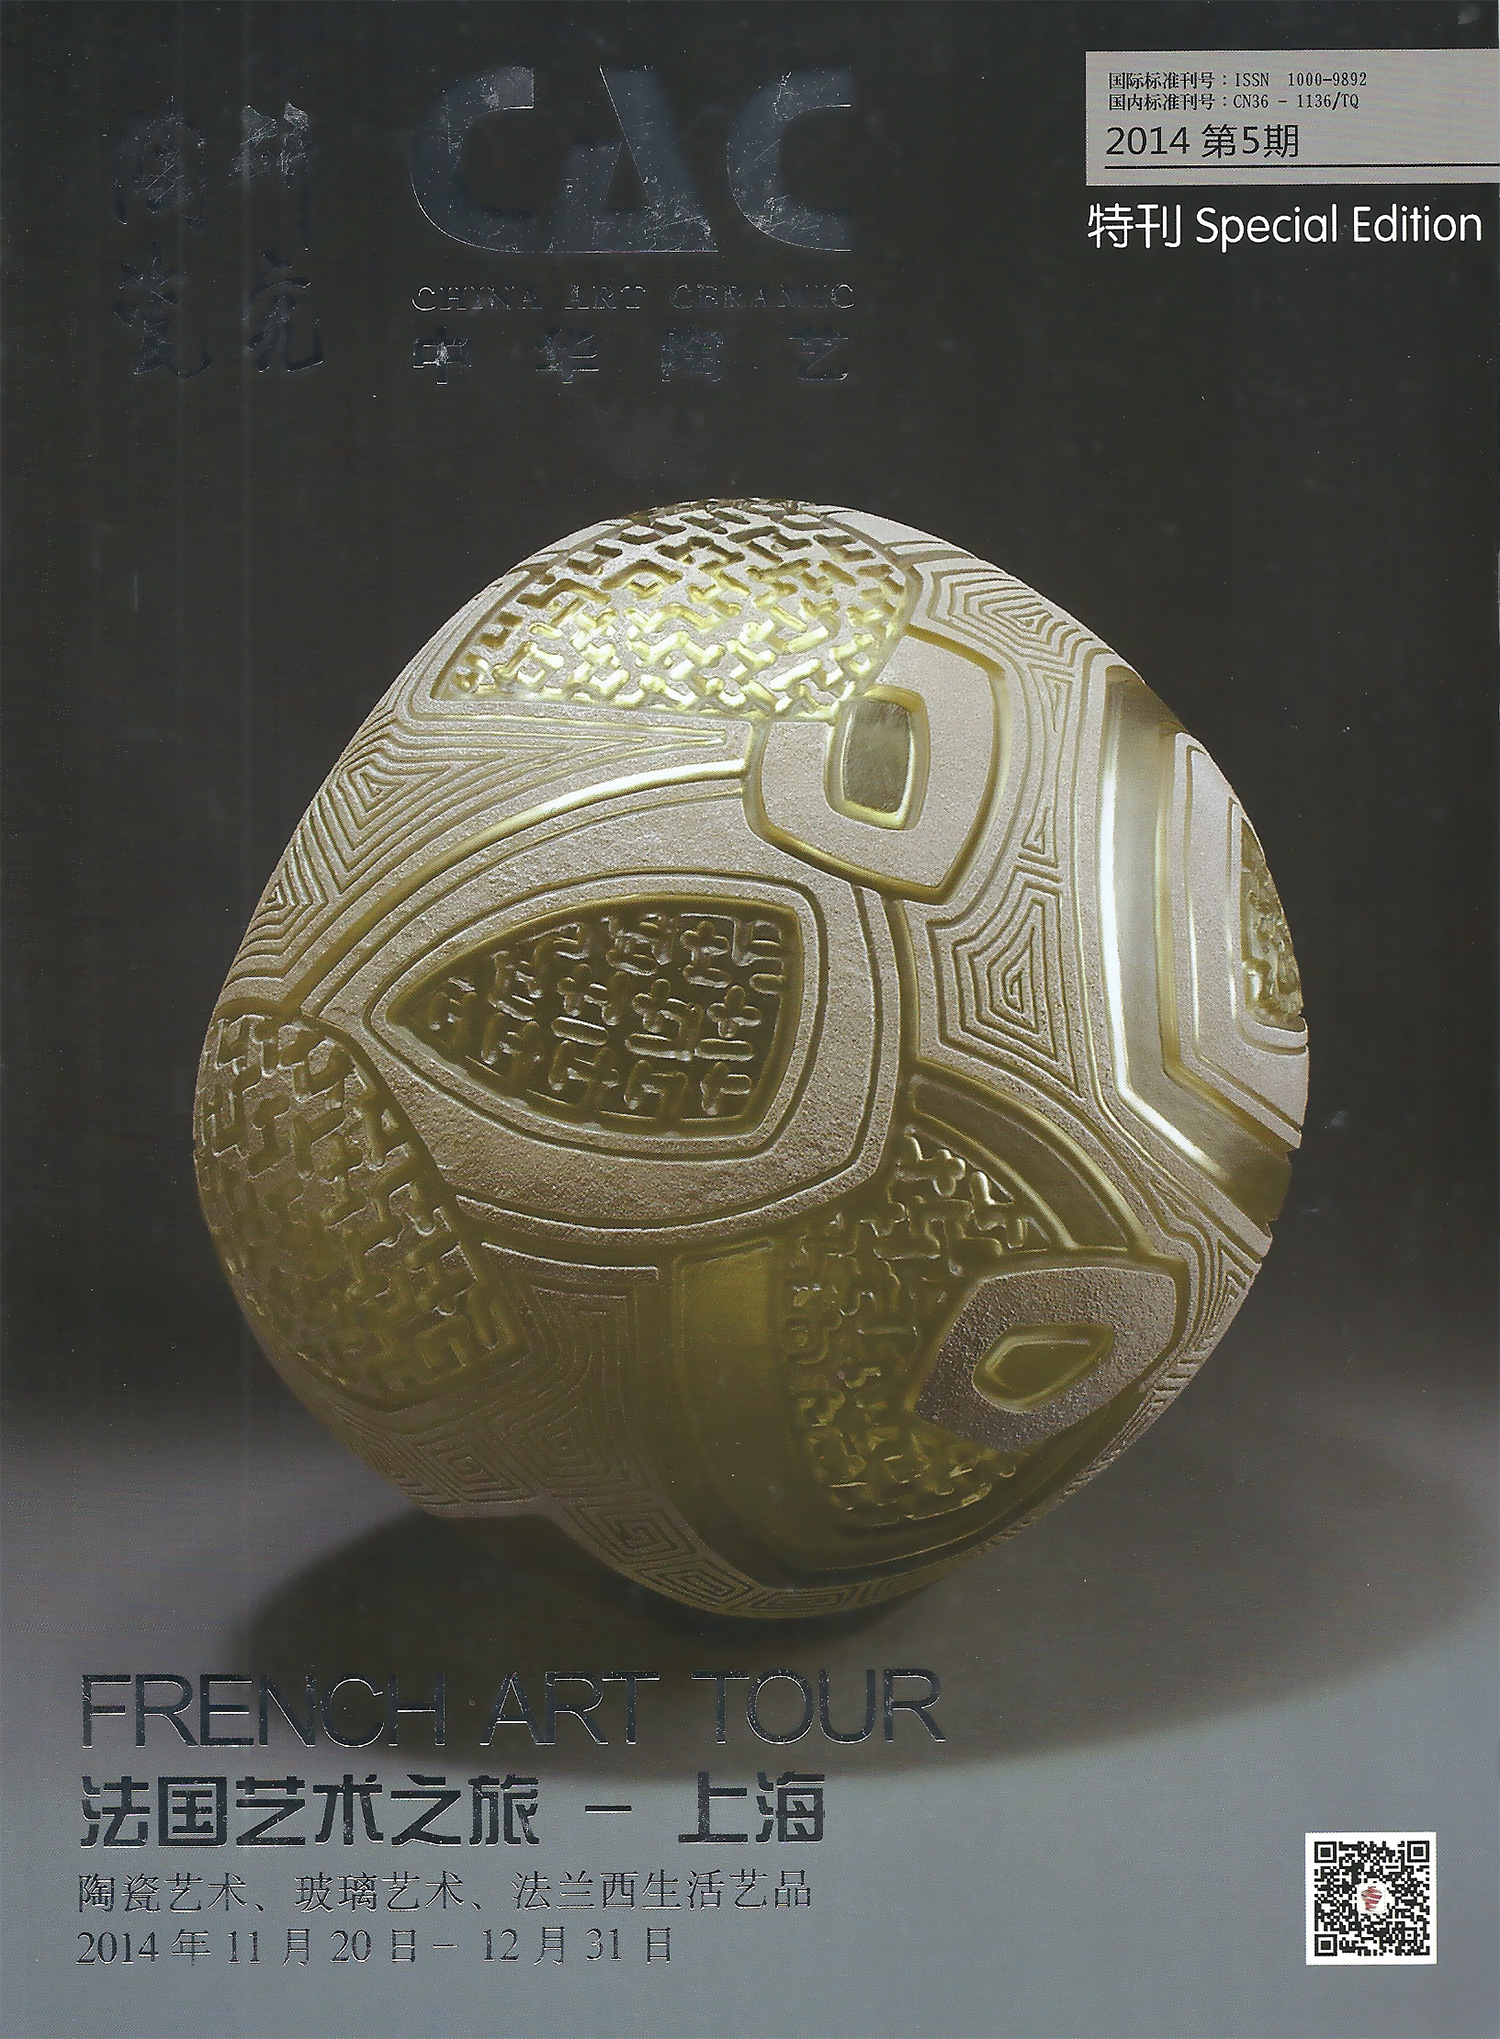 French art tour • Shangaï